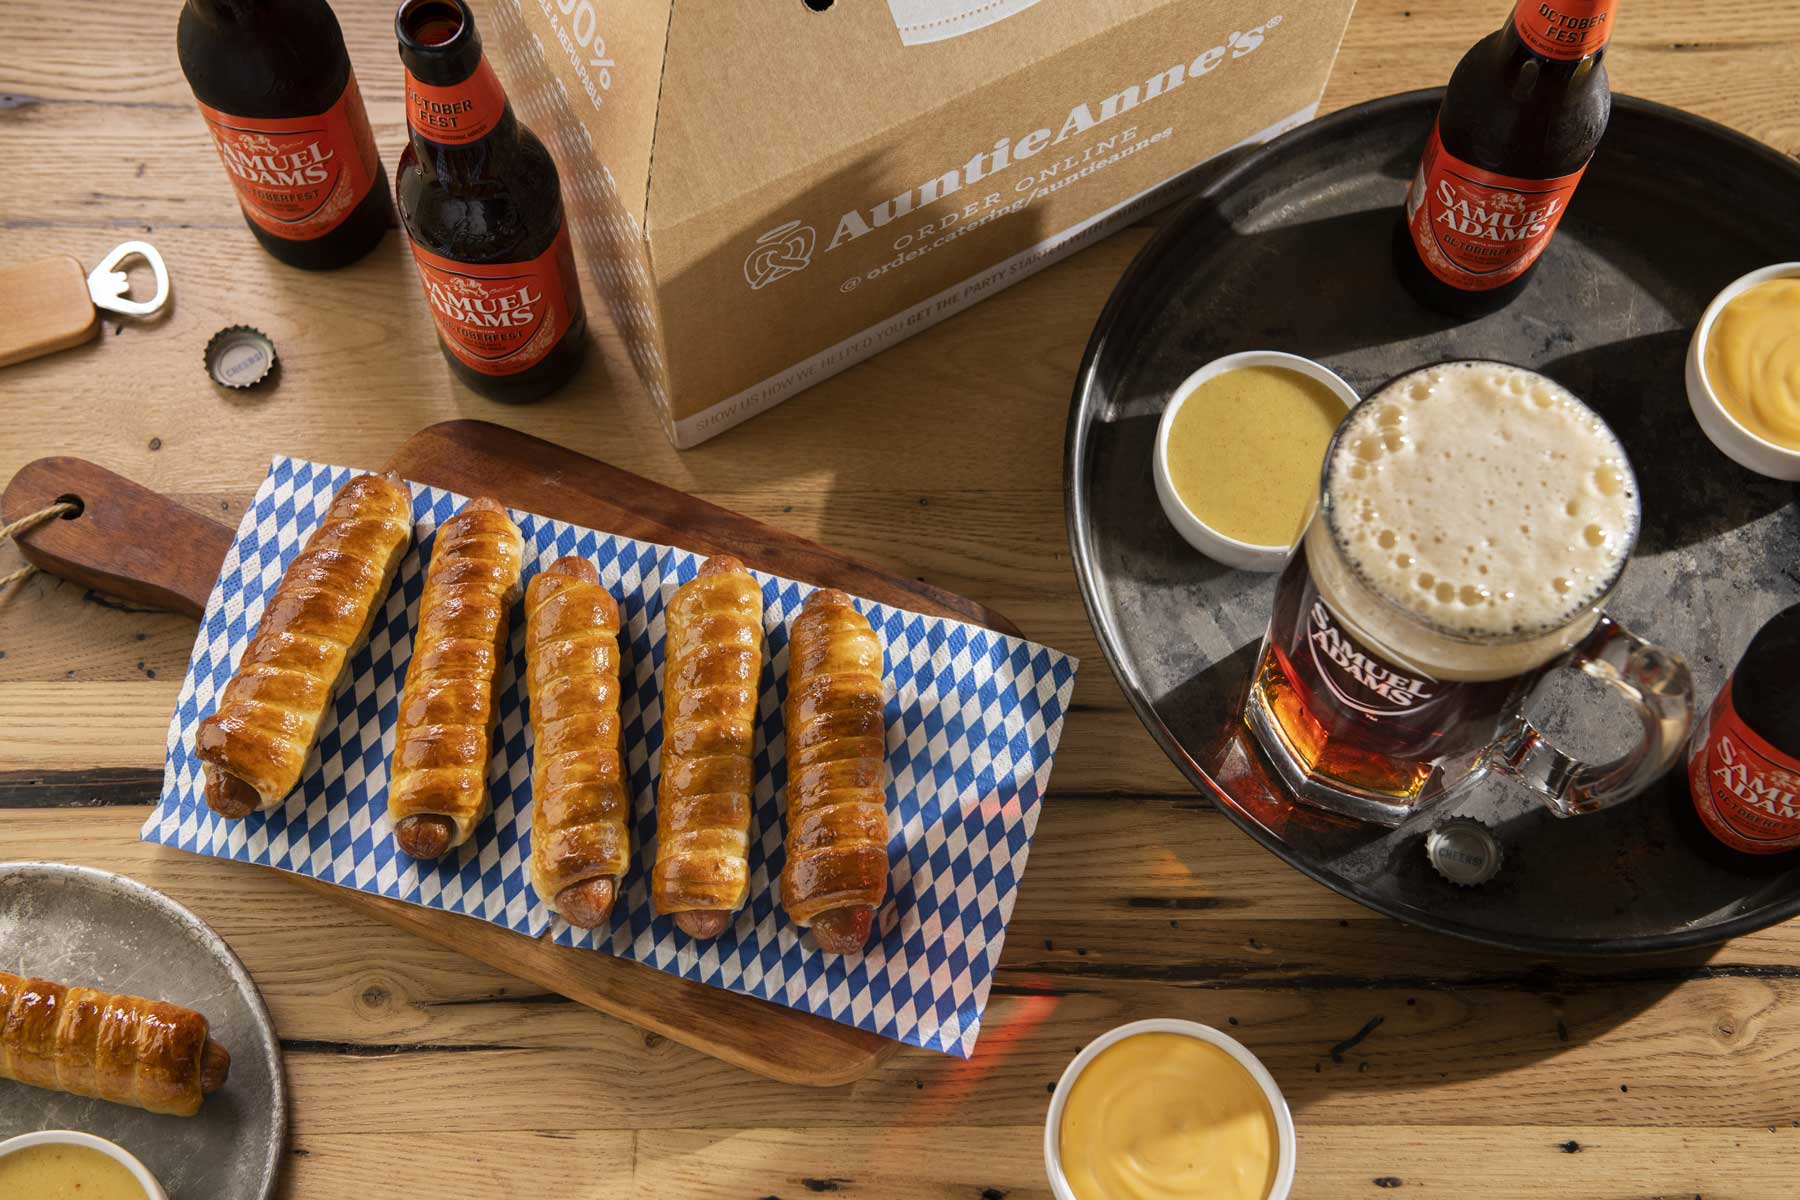 pretzels and beer on table